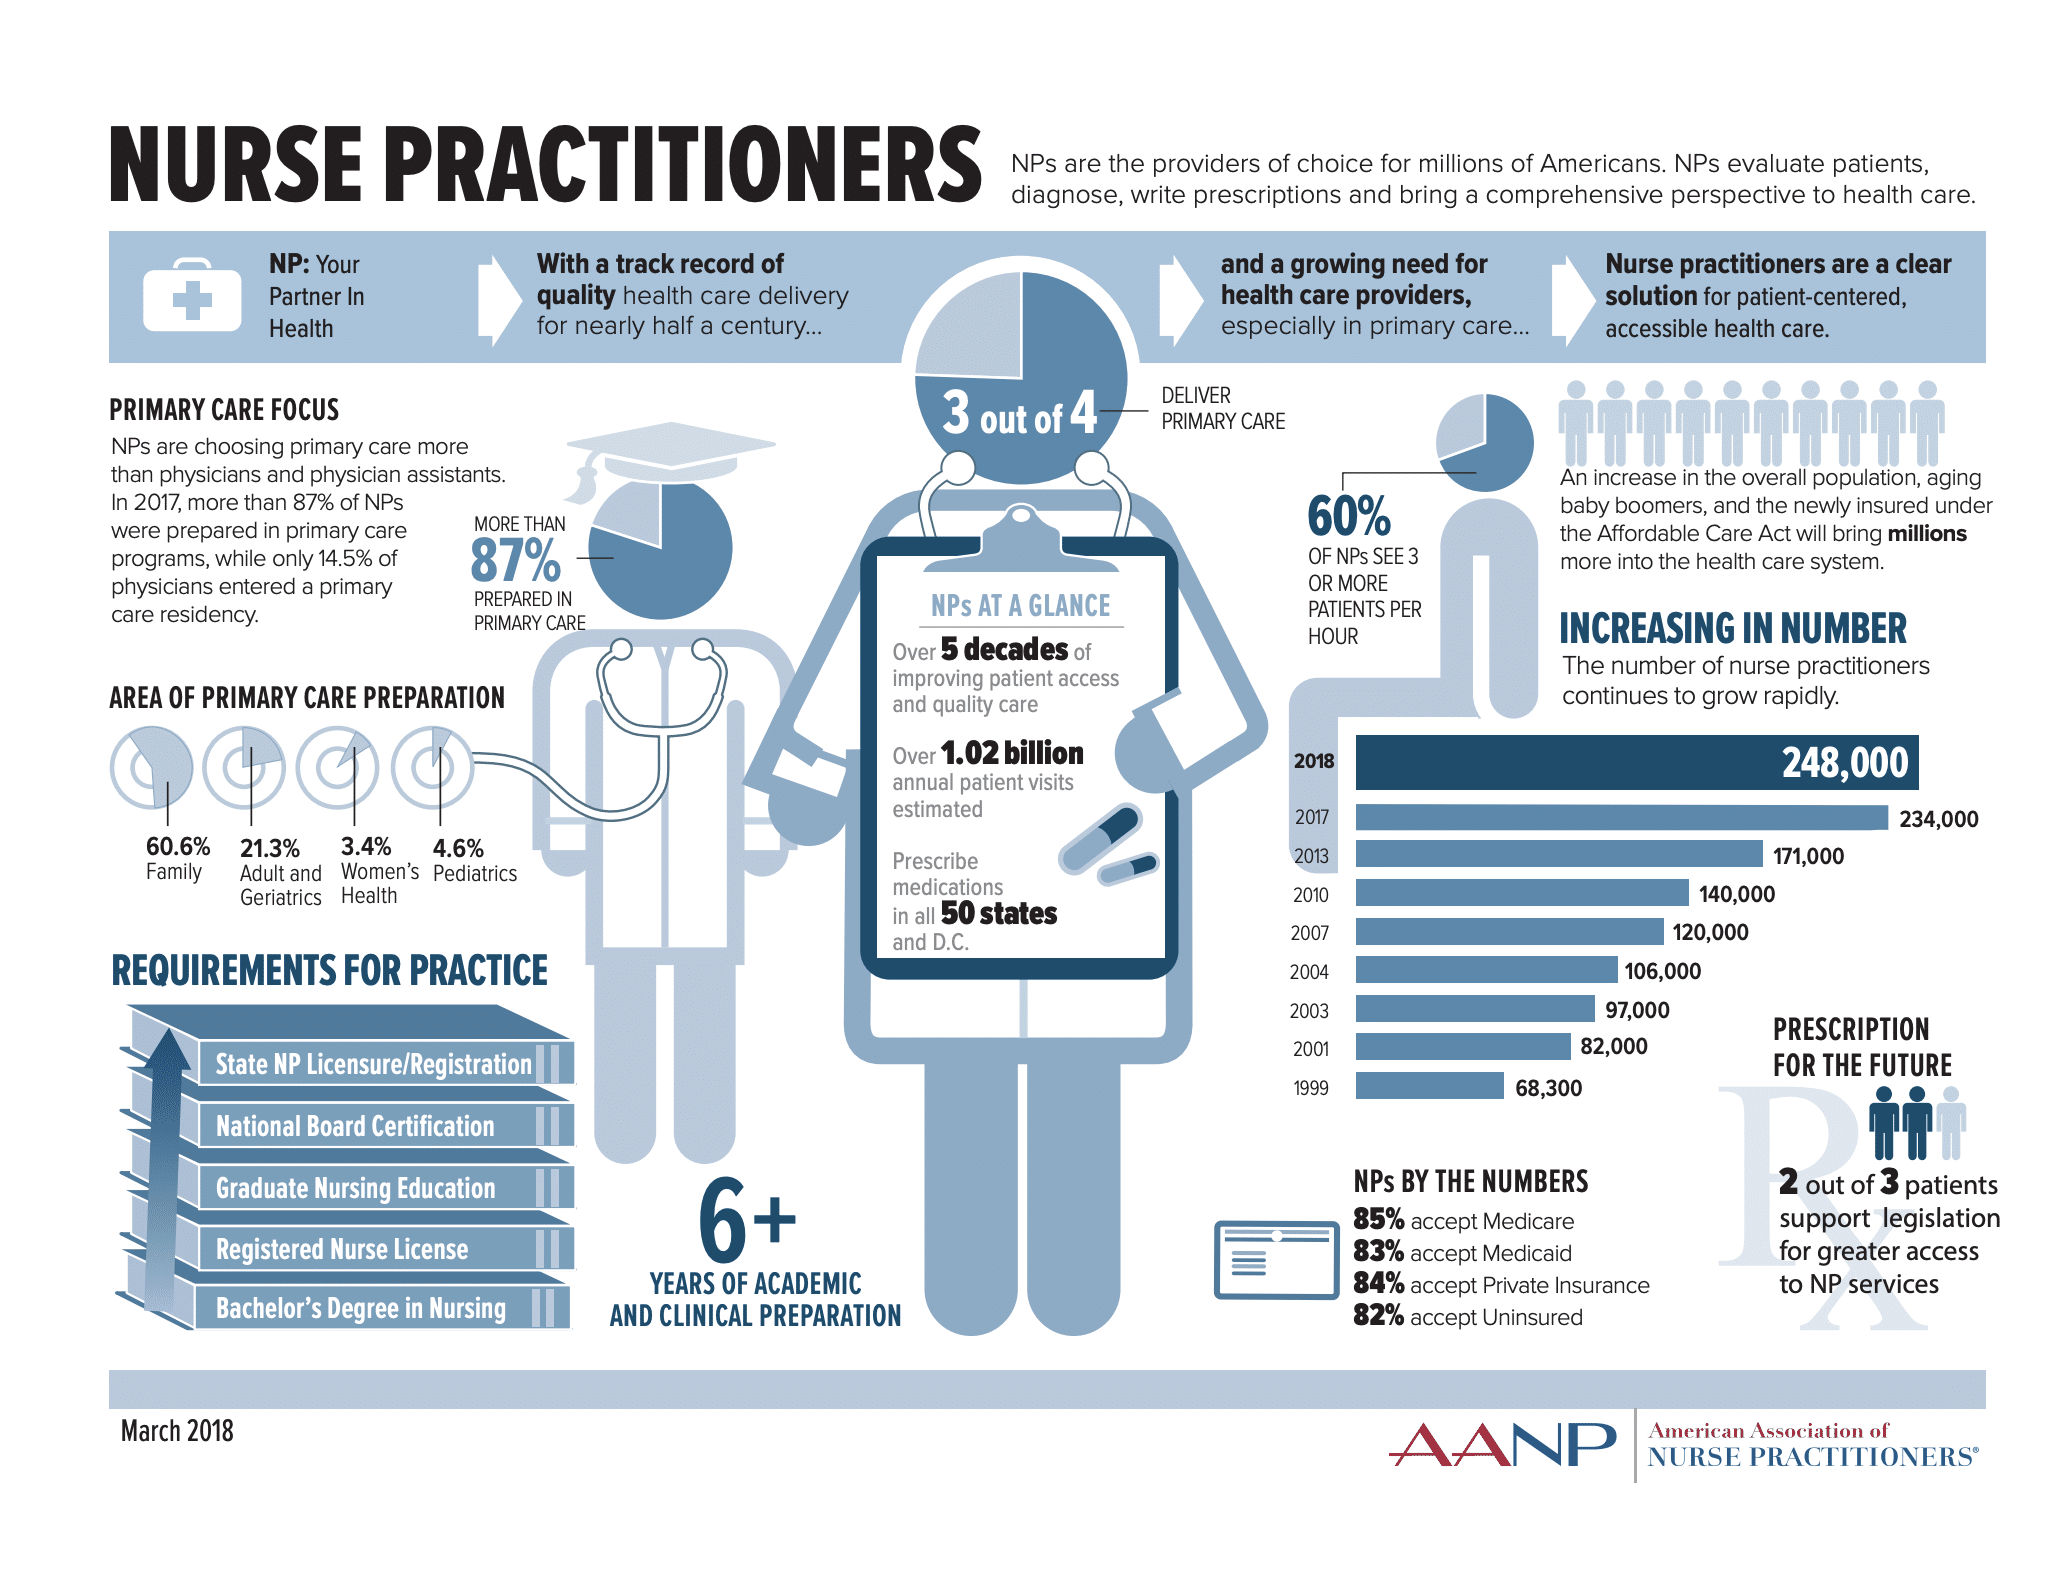 Roles and Statistics about Nurse Practitioners